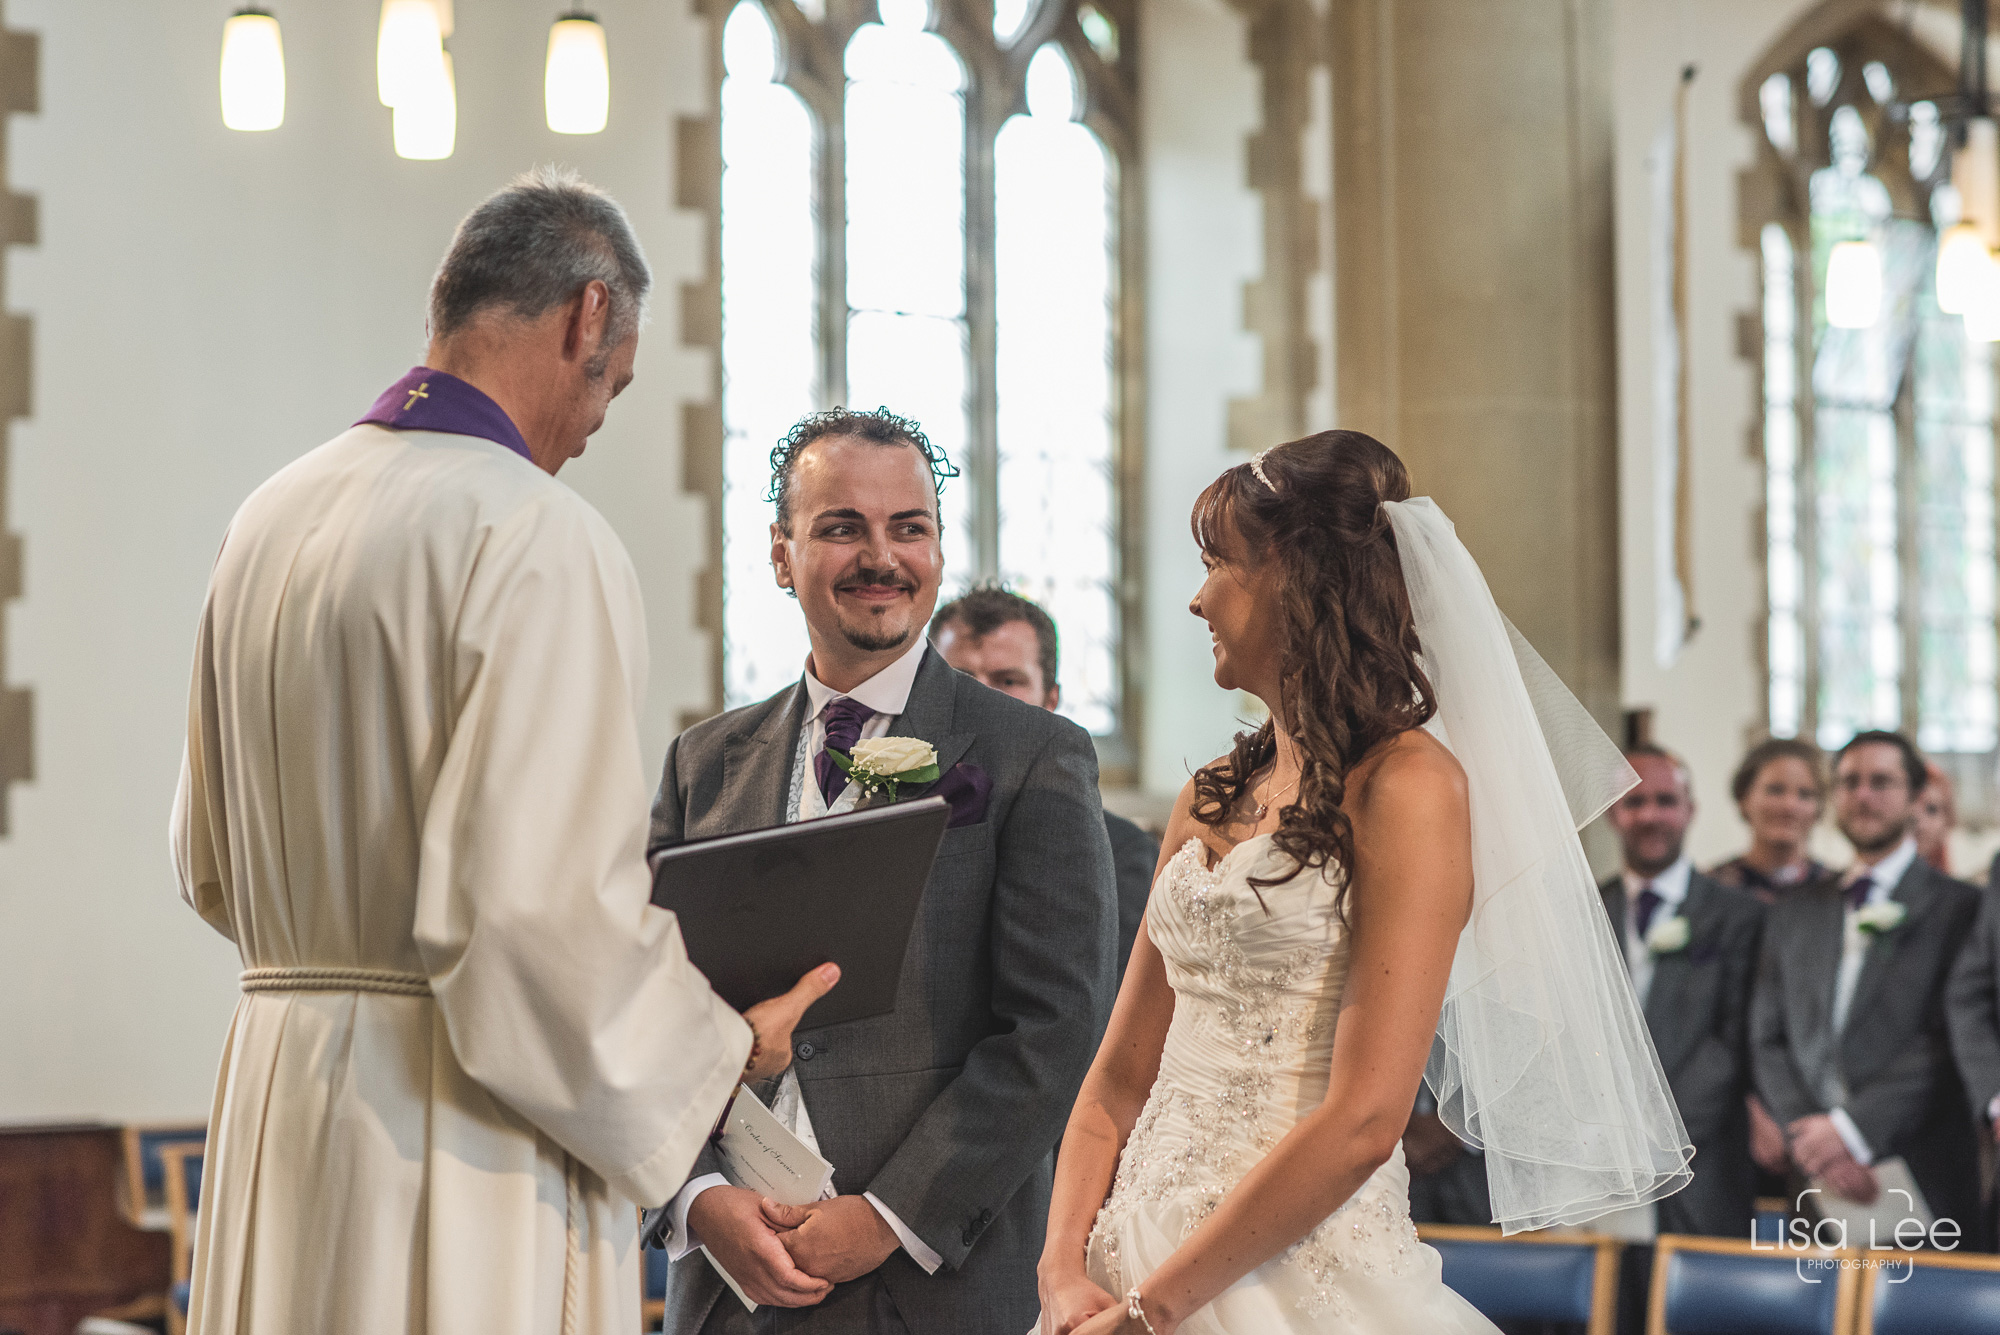 All-Saints-Church-Lisa-Lee-Documentary-Wedding-Photography-6.jpg